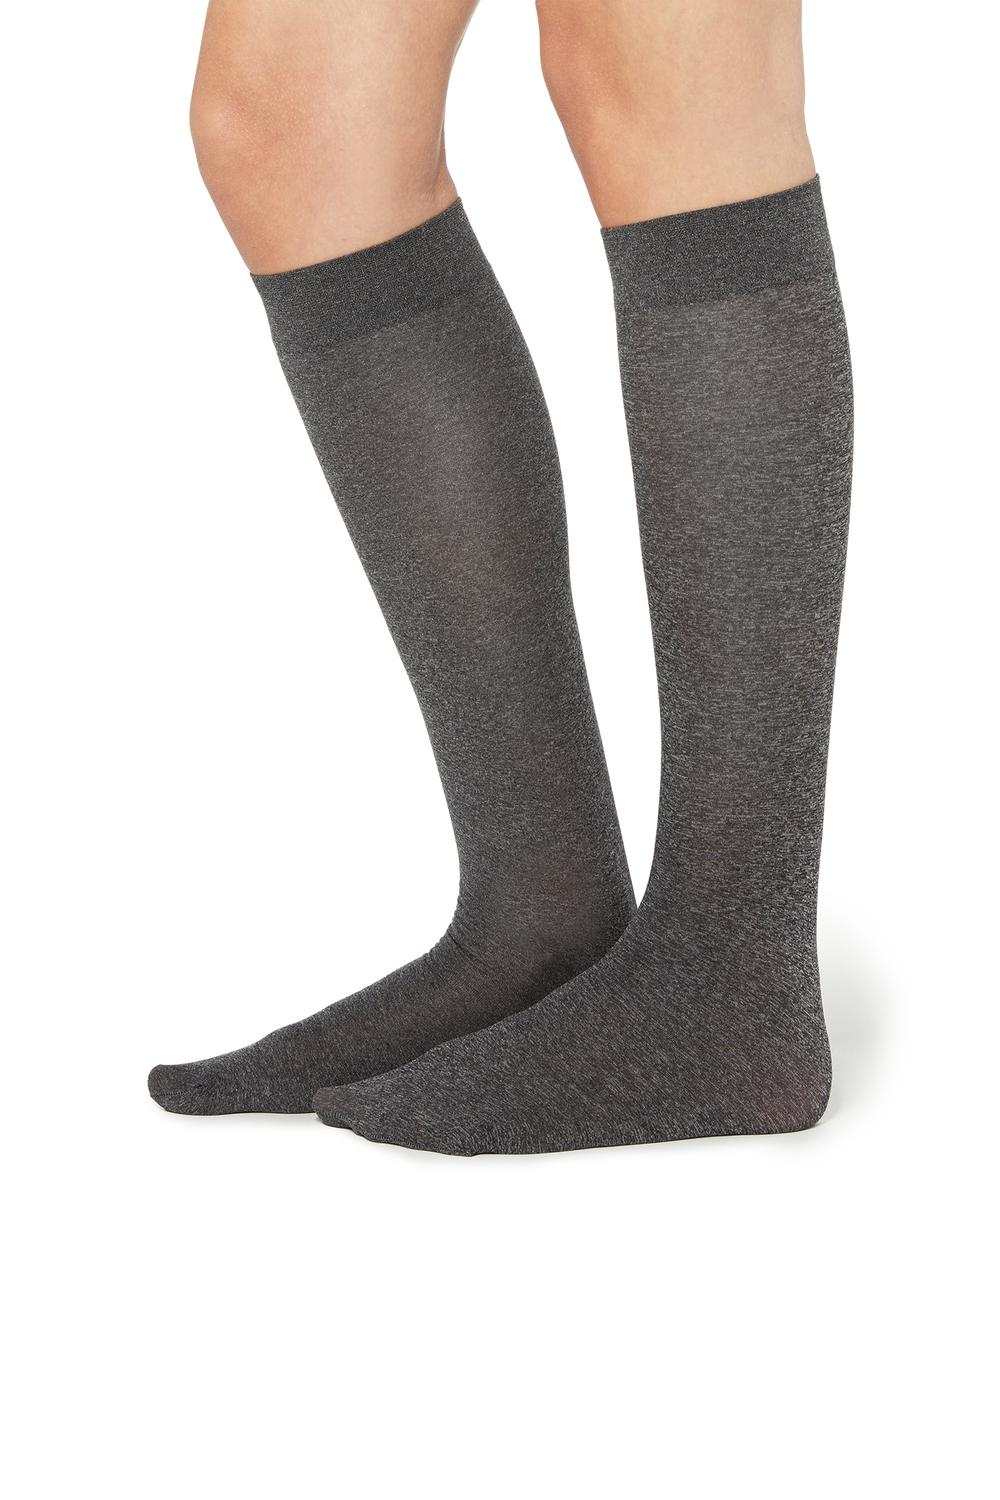 2 X 50 Den Microfibre Knee-Highs